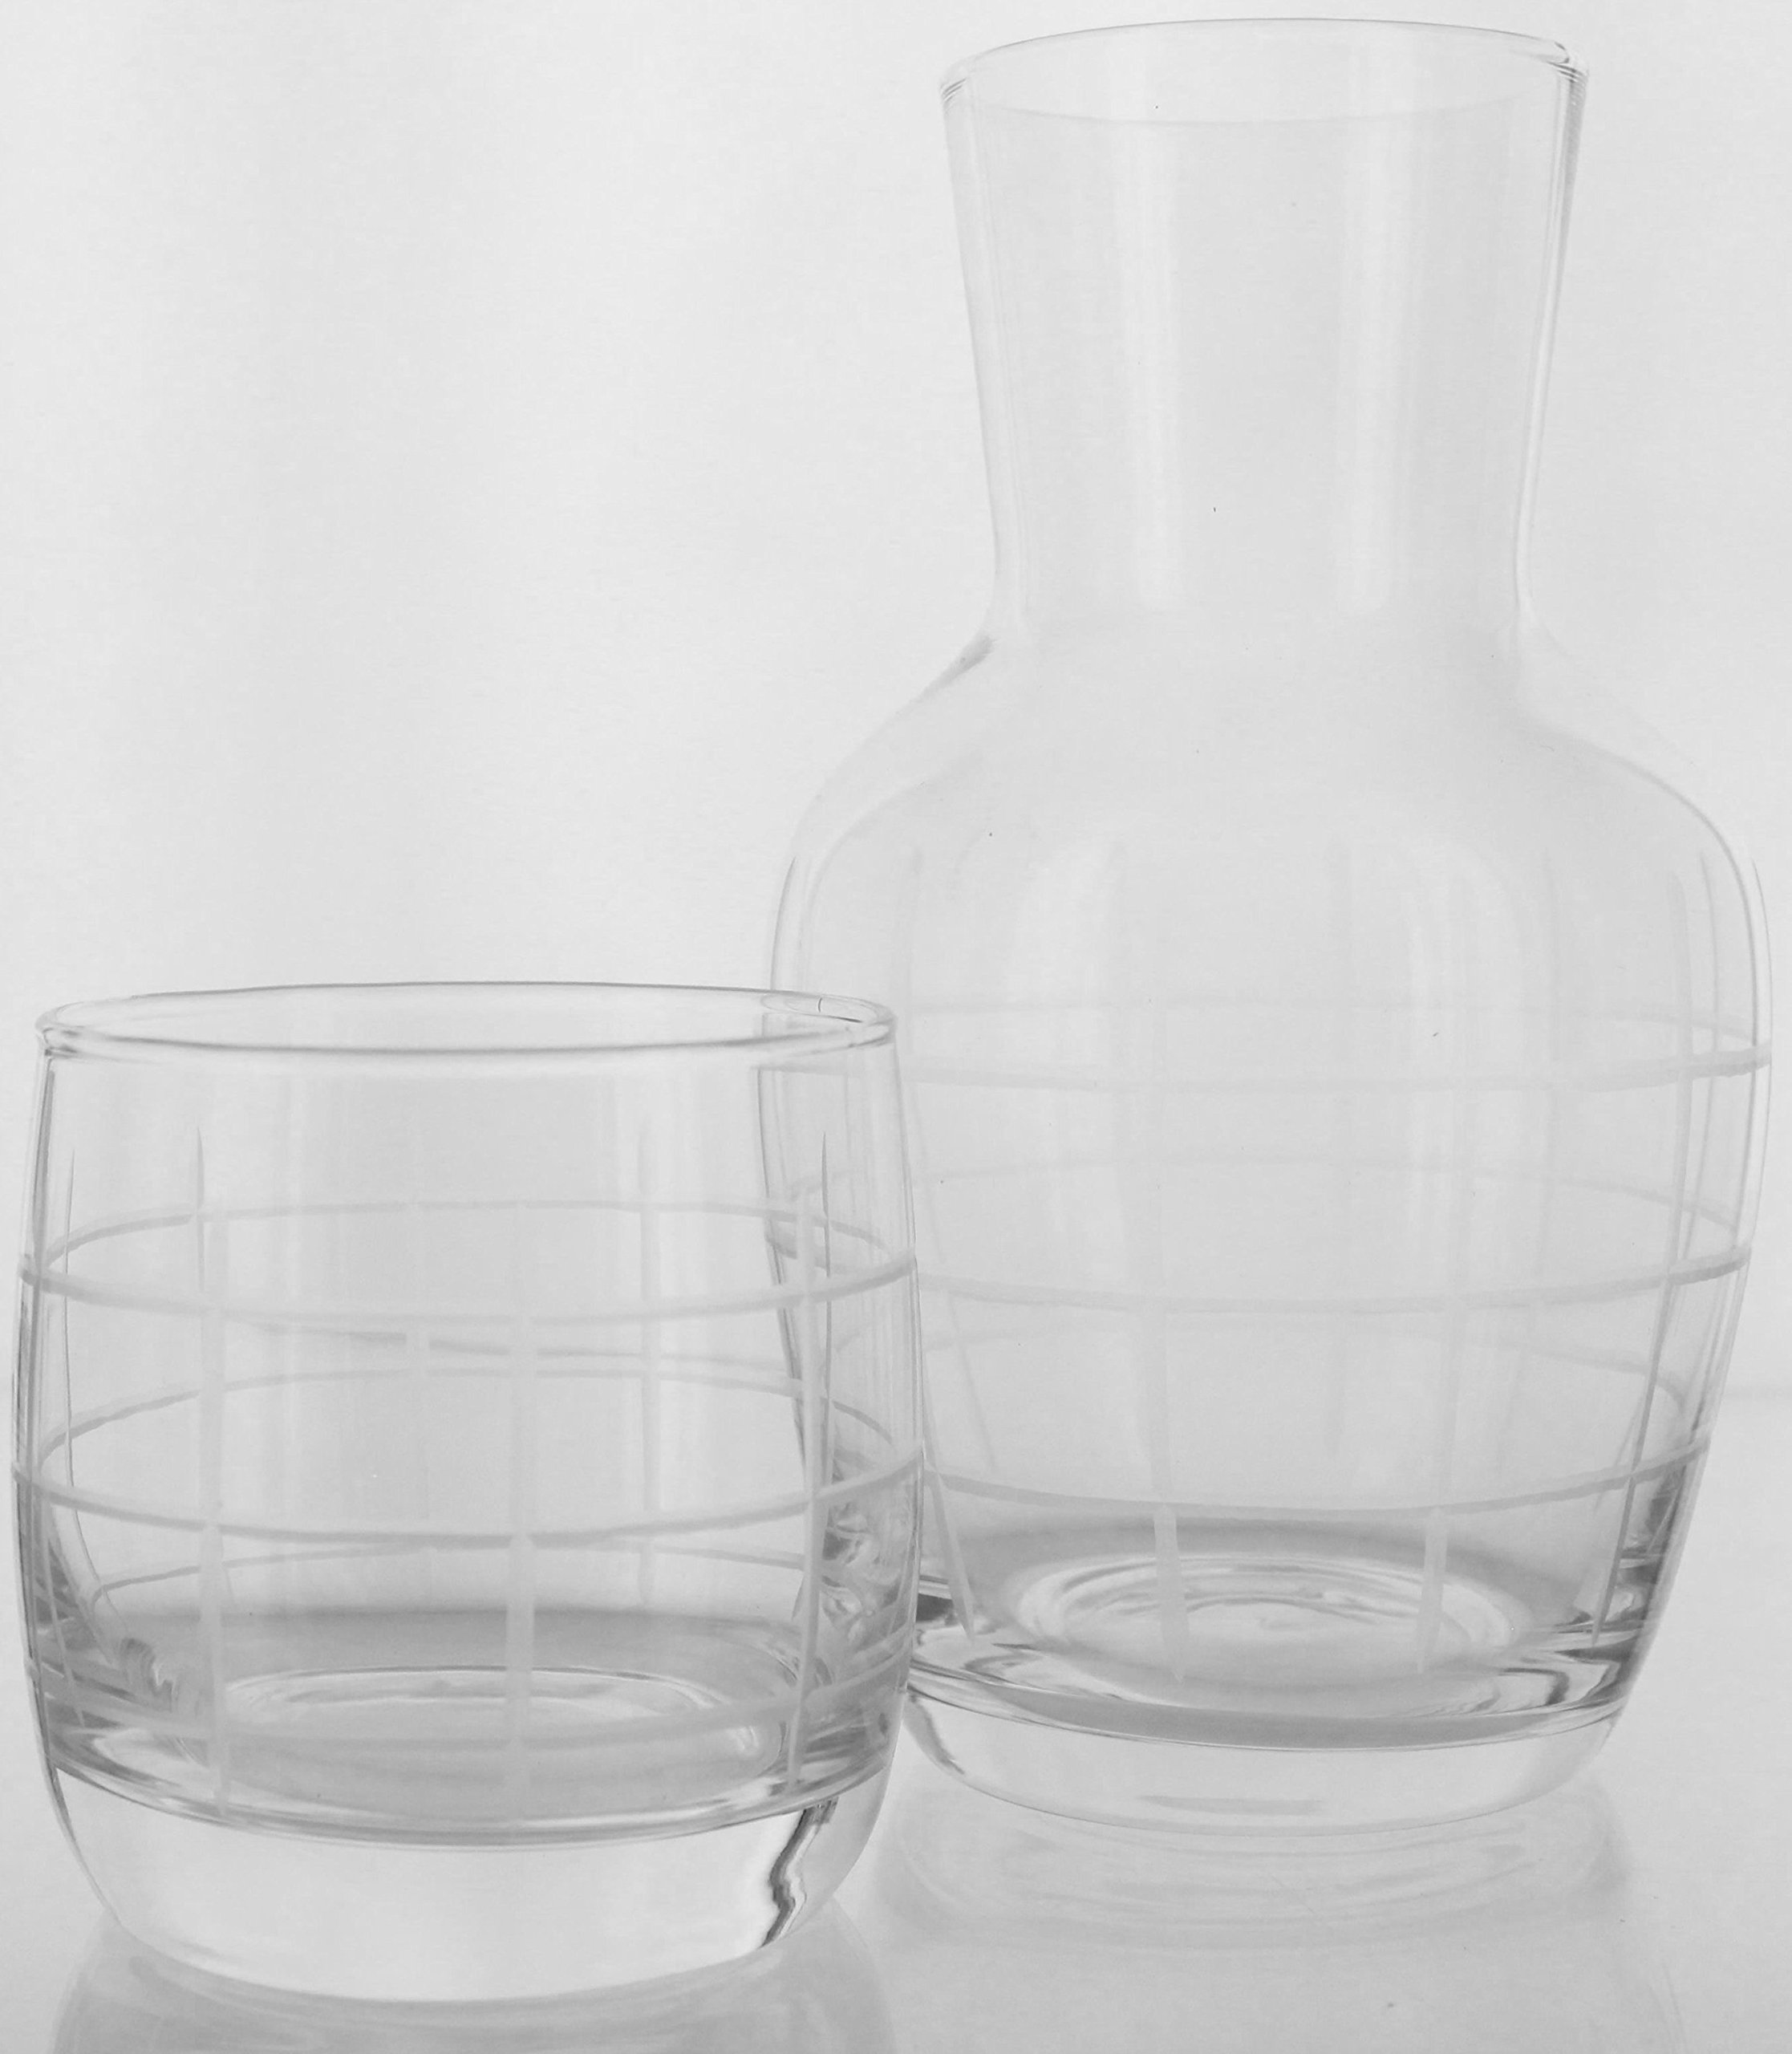 American Atelier 2-Pack Medallion Checker 2 Piece Set Night Carafe - Sophisticated Checkered Design w/Glass Tumbler Perfect for Bedside/Desktop/Shelf for All Occasions, Great for Storing Water, Juice